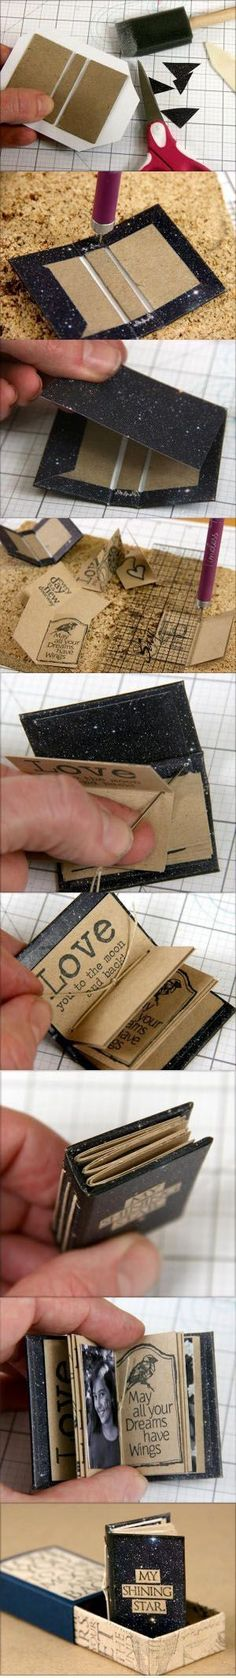 Book binding tutorial diy mini albums new Ideas Fun Crafts, Diy And Crafts, Arts And Crafts, Mini Albums, Diy Paper, Paper Crafts, Little Presents, Mini Album Tutorial, Ideias Diy